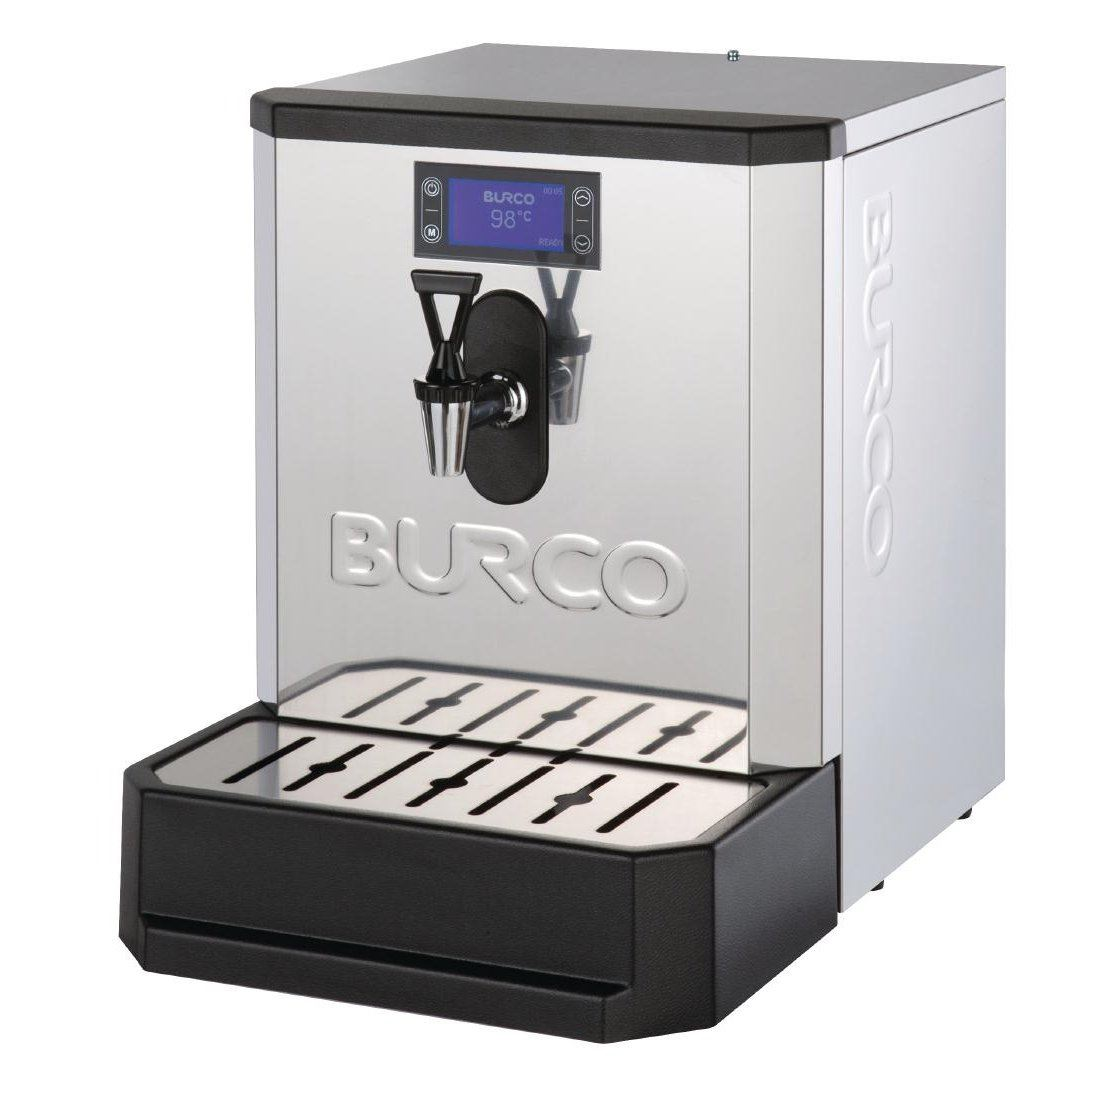 Burco Autofill Countertop Water Boiler With Filtration And